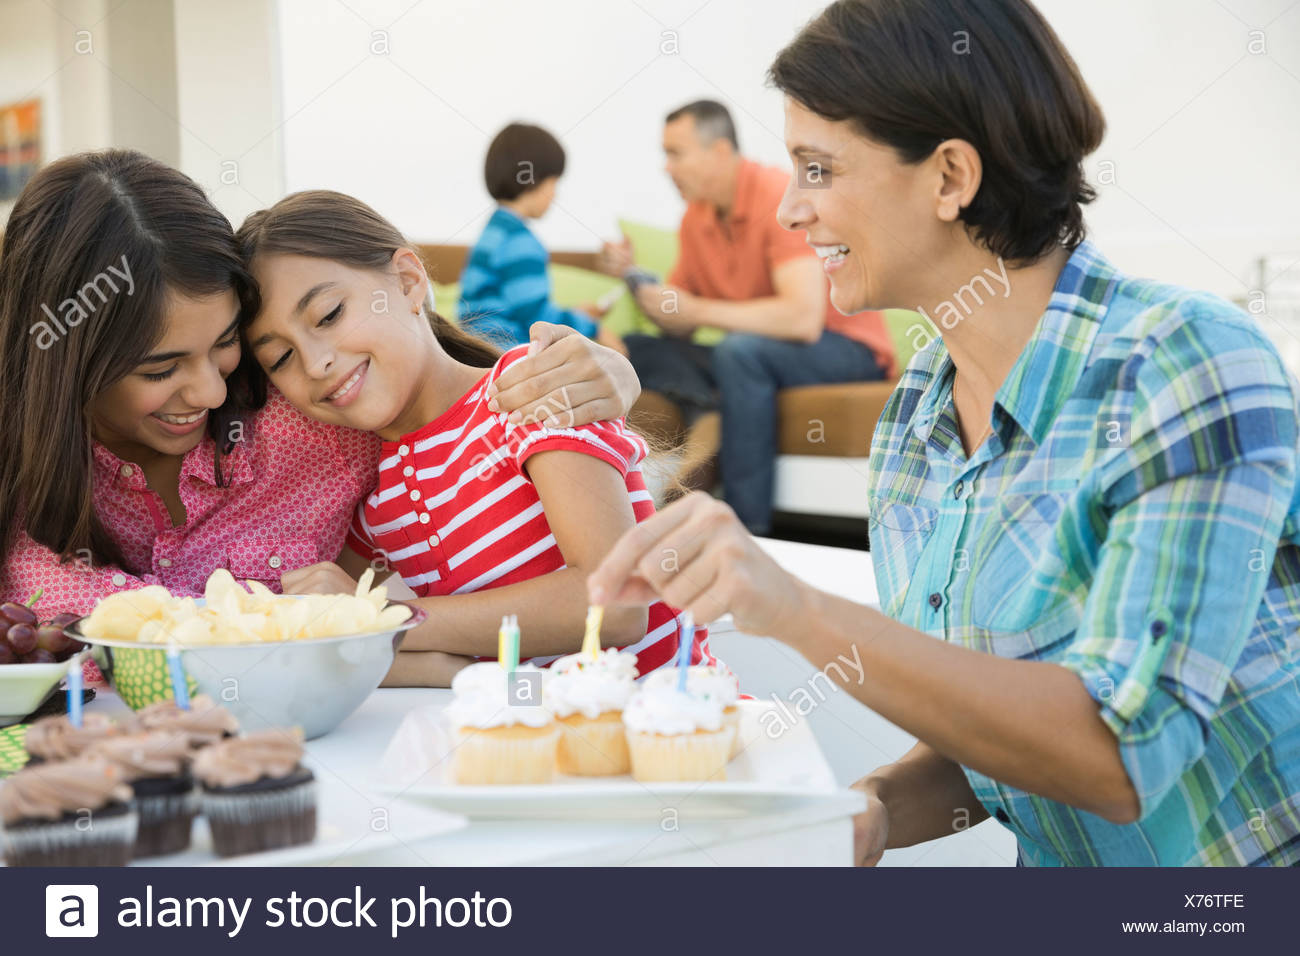 Family celebrating girls birthday - Stock Image